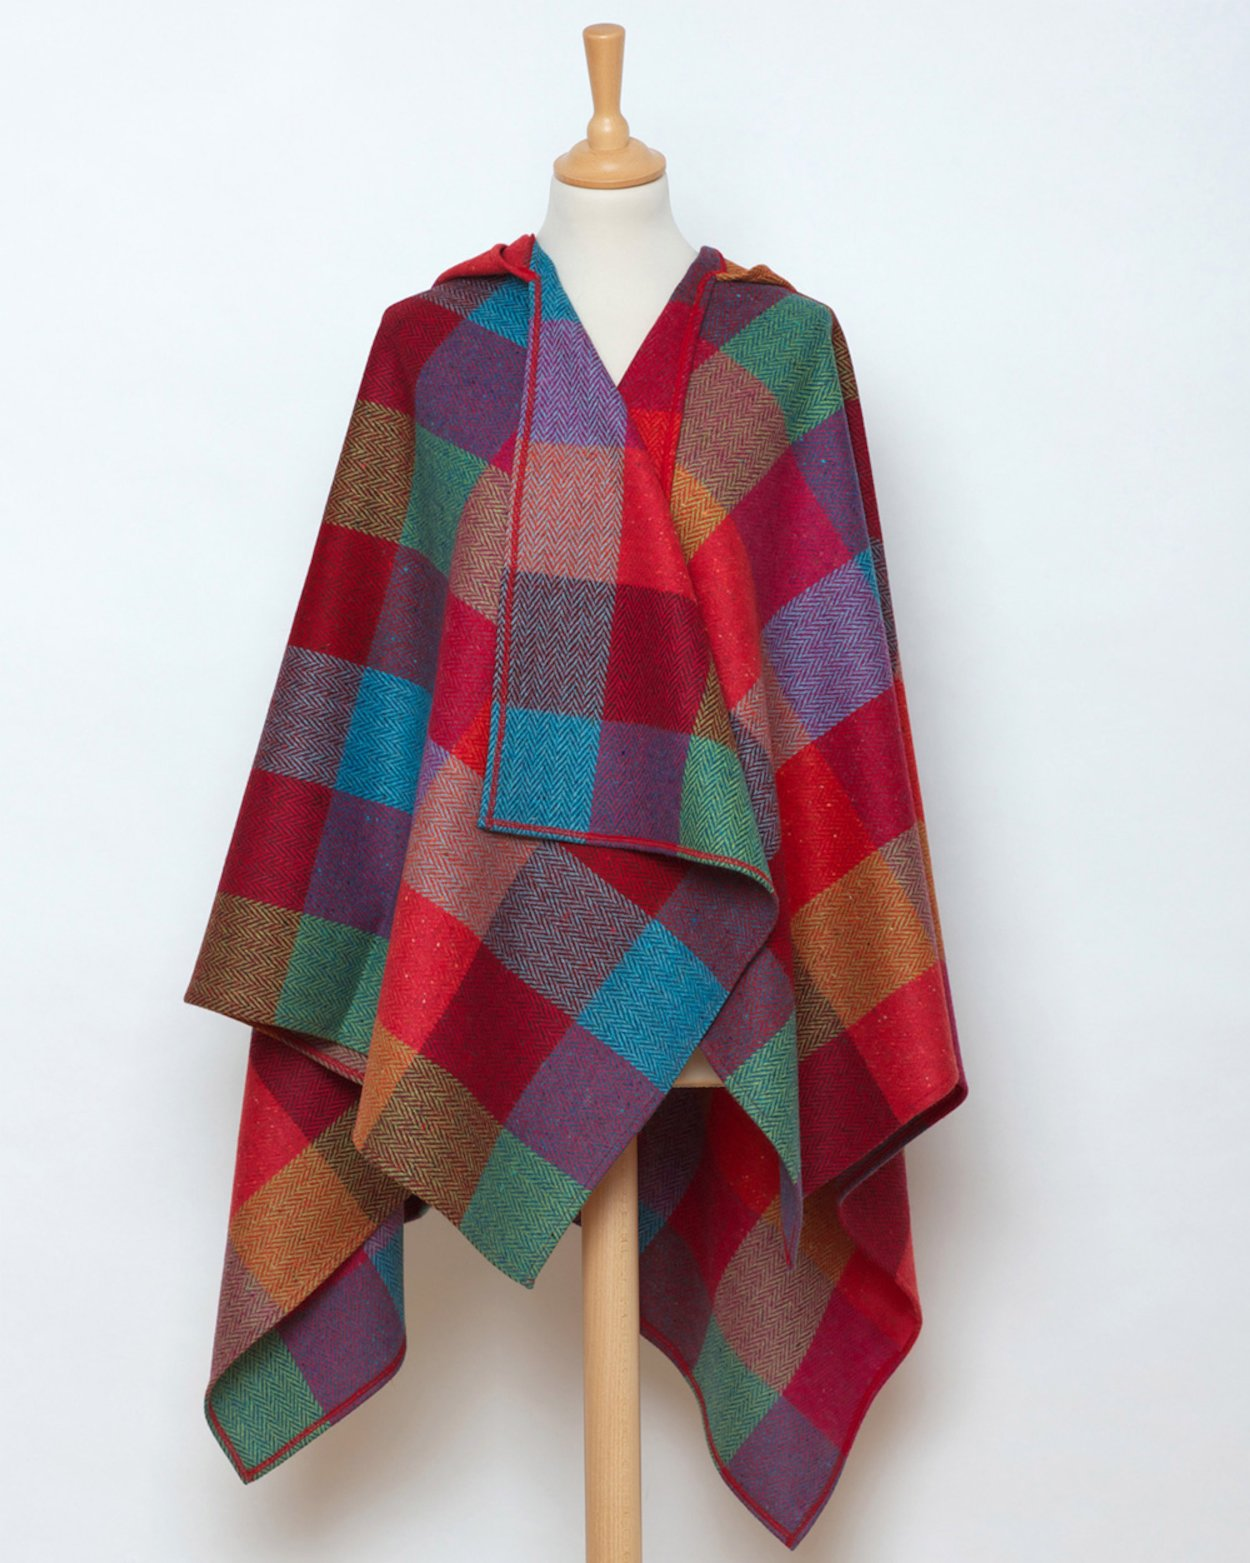 Angel Cape in Trudy